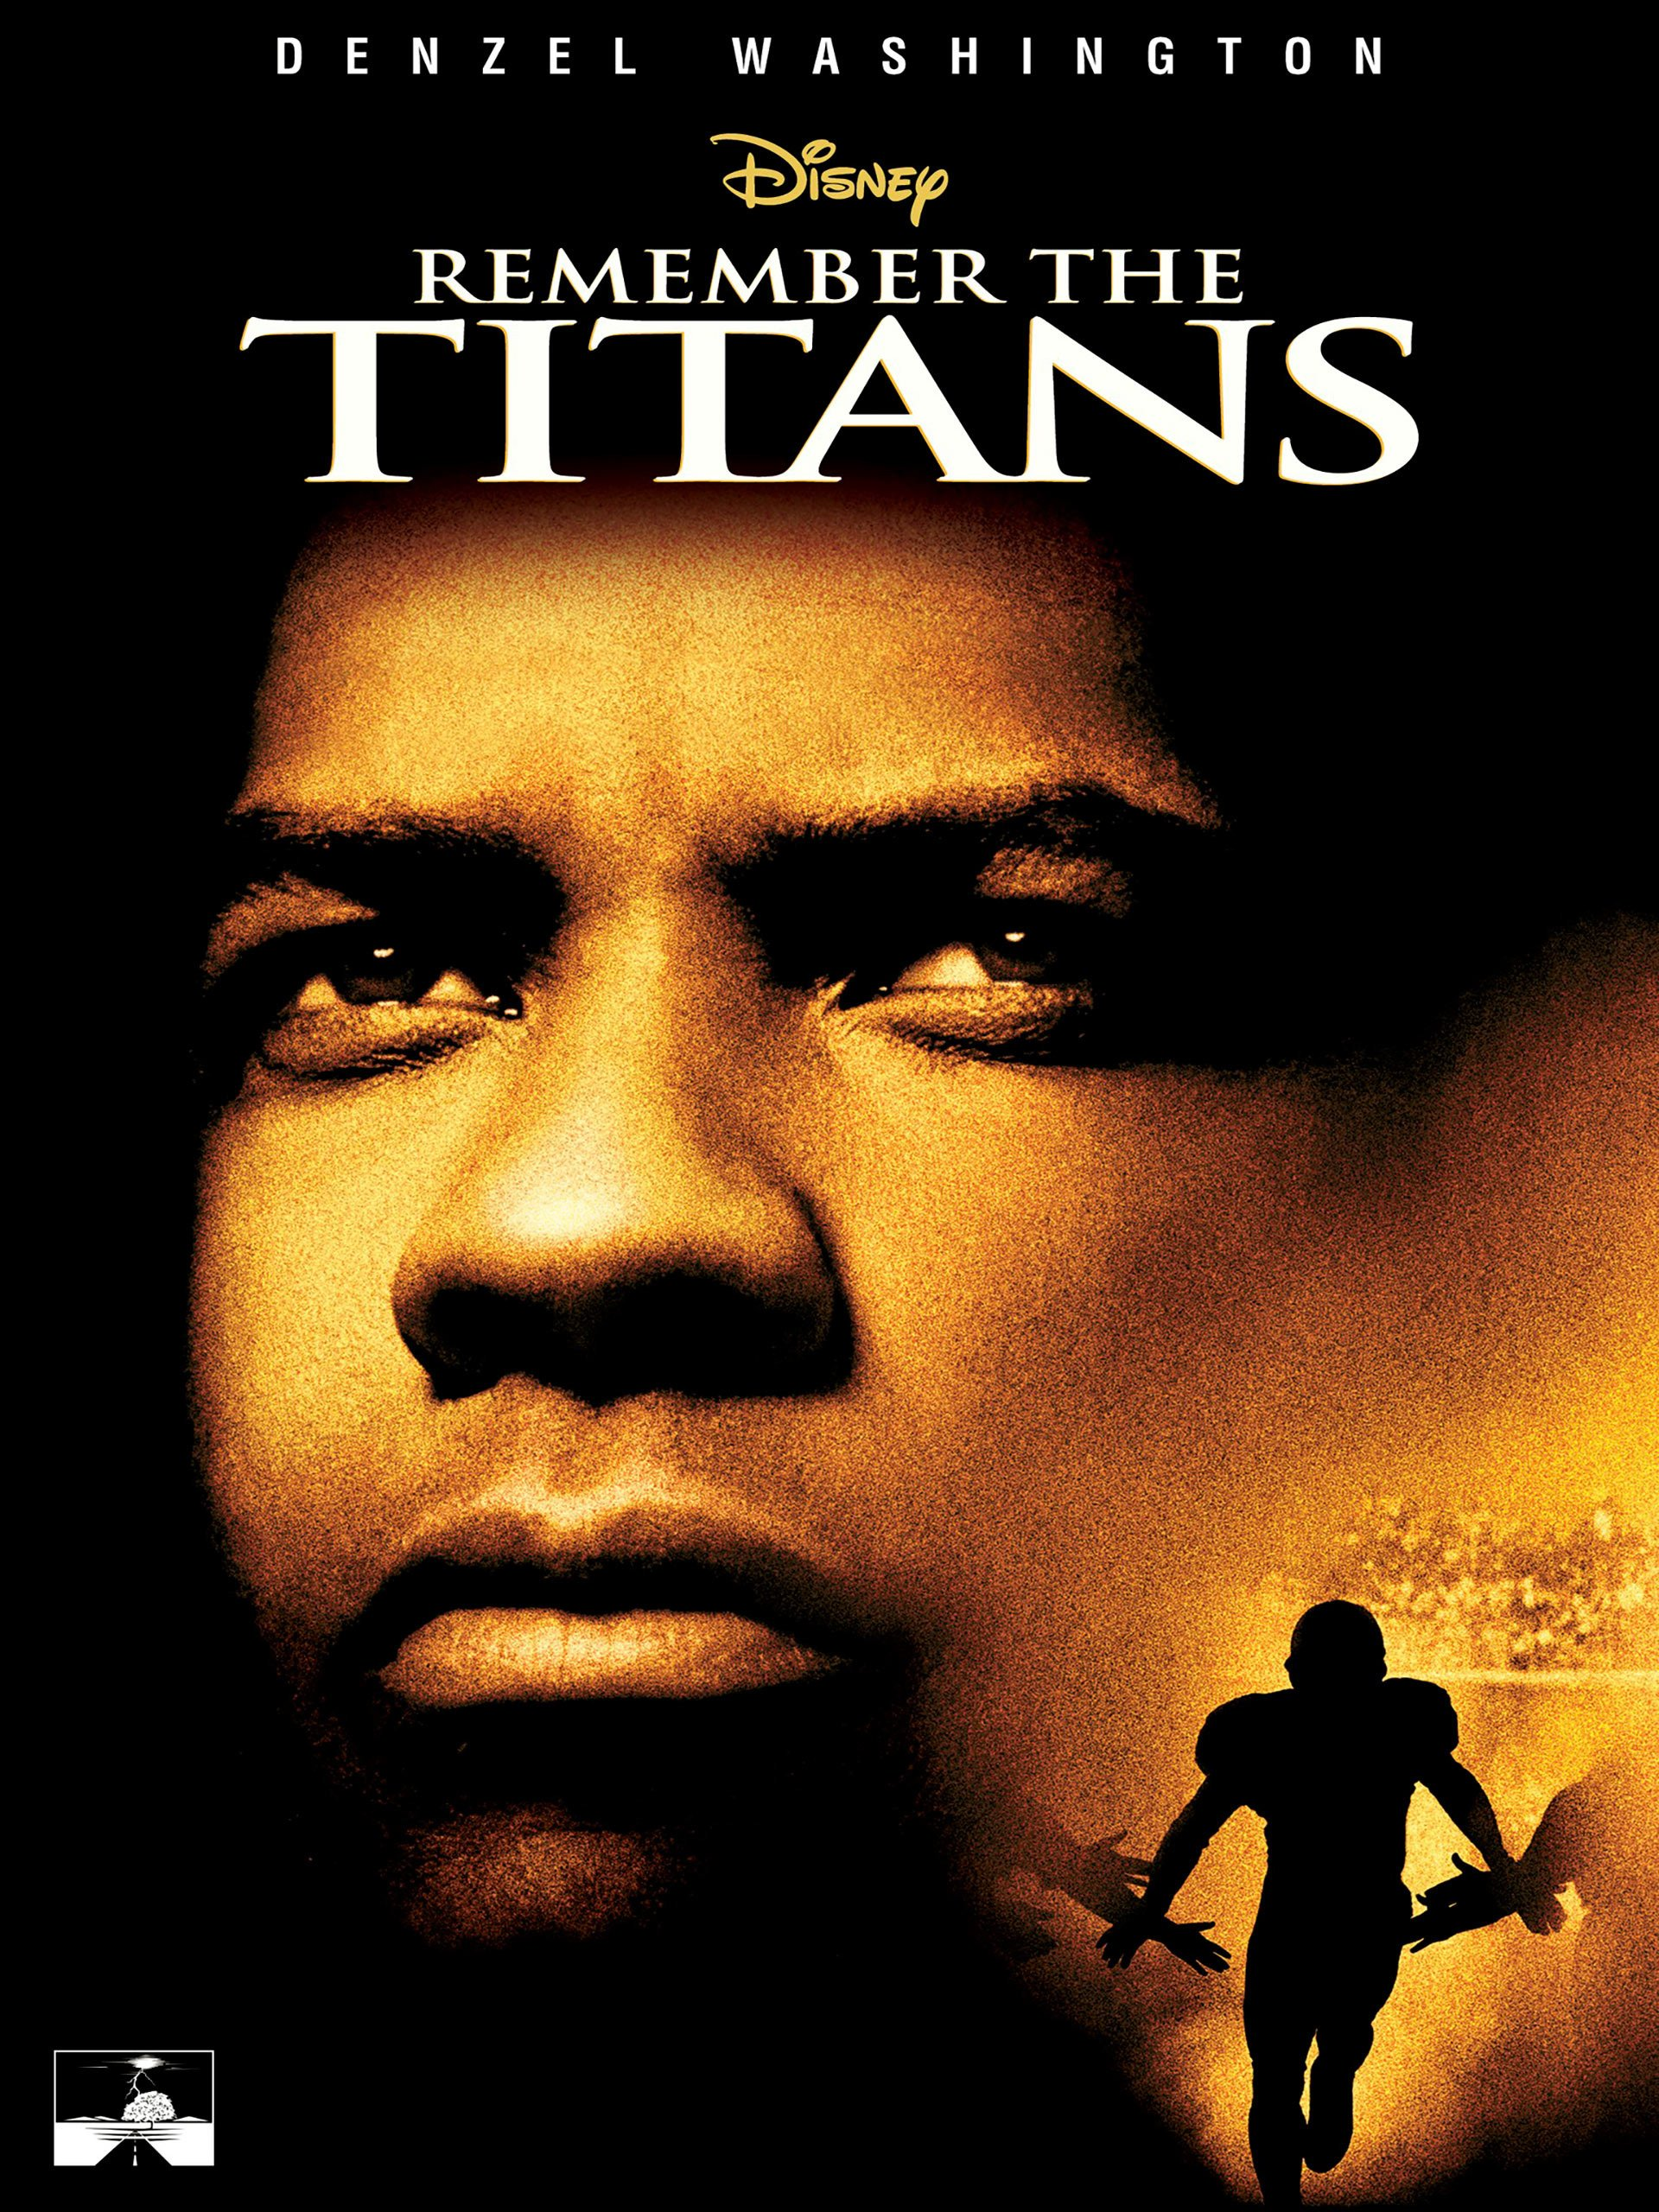 Essay on remember the titans